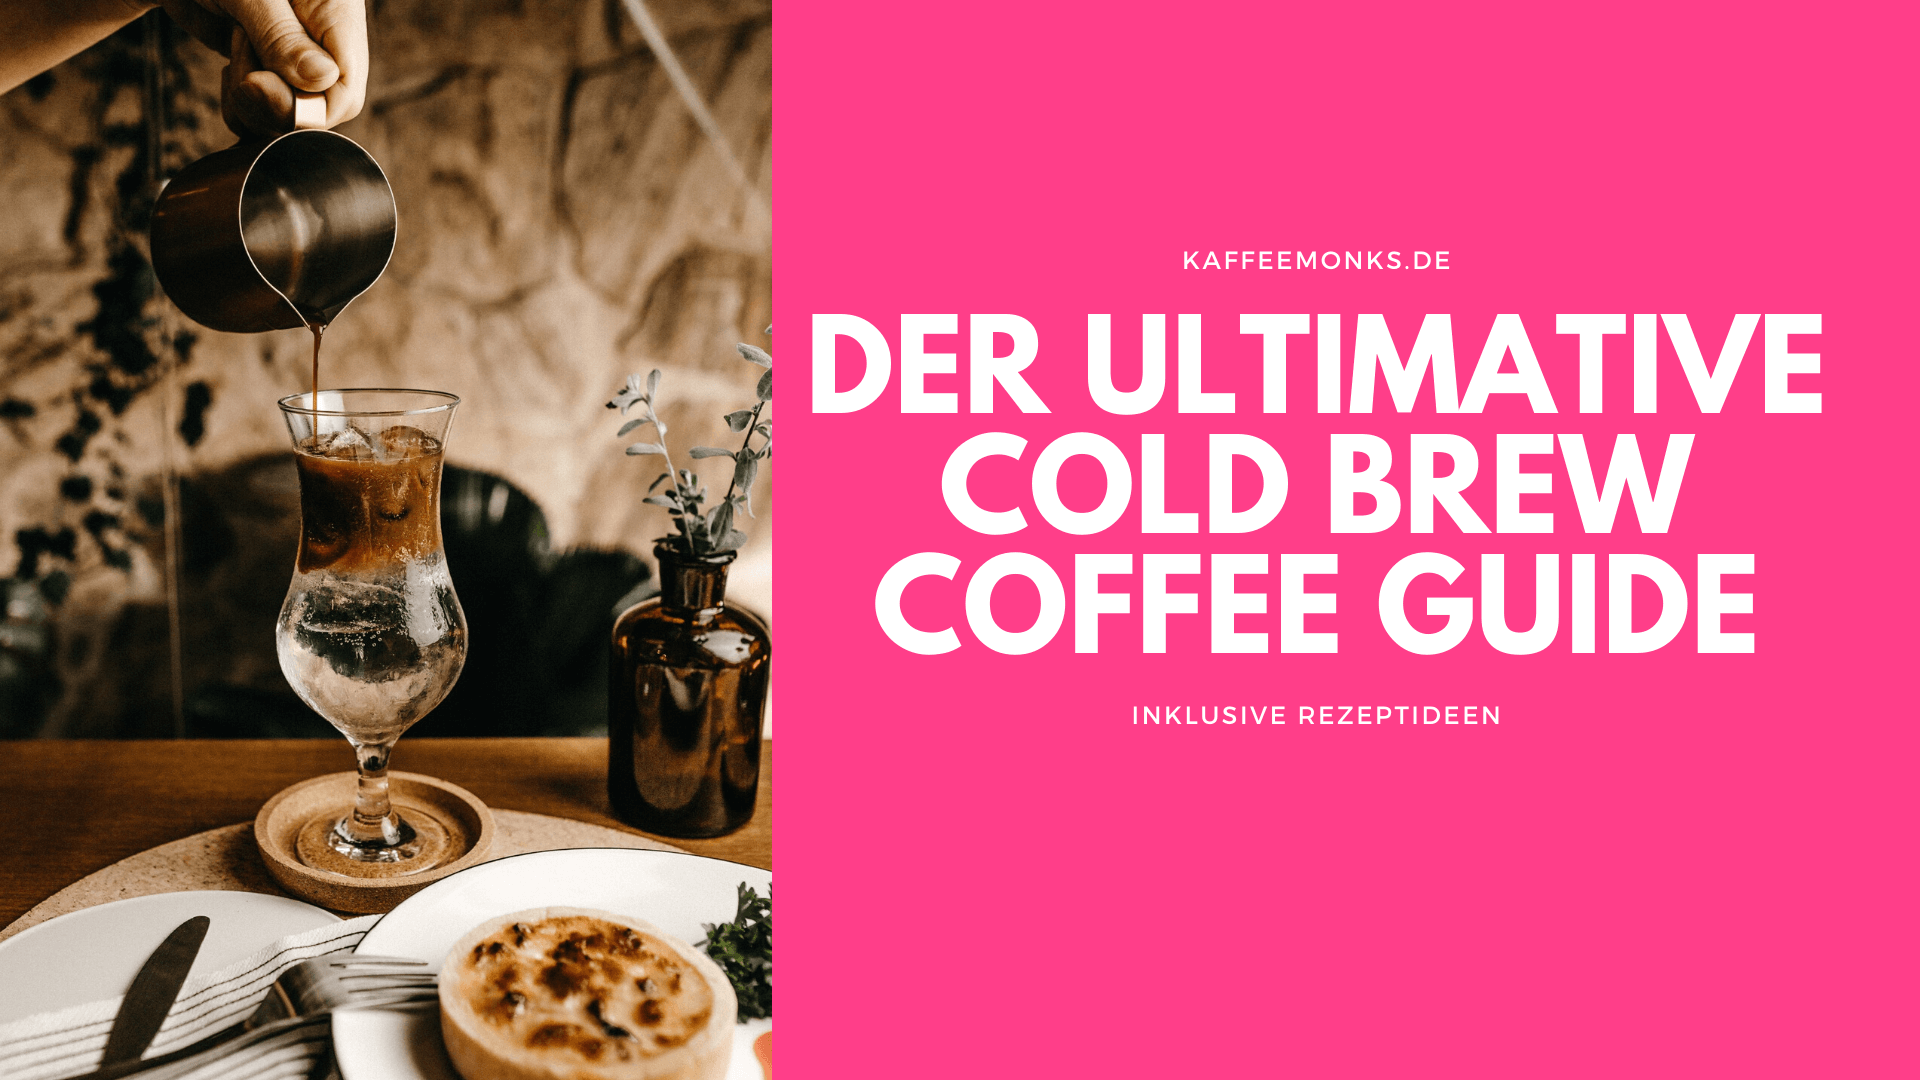 You are currently viewing DER ULTIMATIVE COLD BREW COFFEE GUIDE